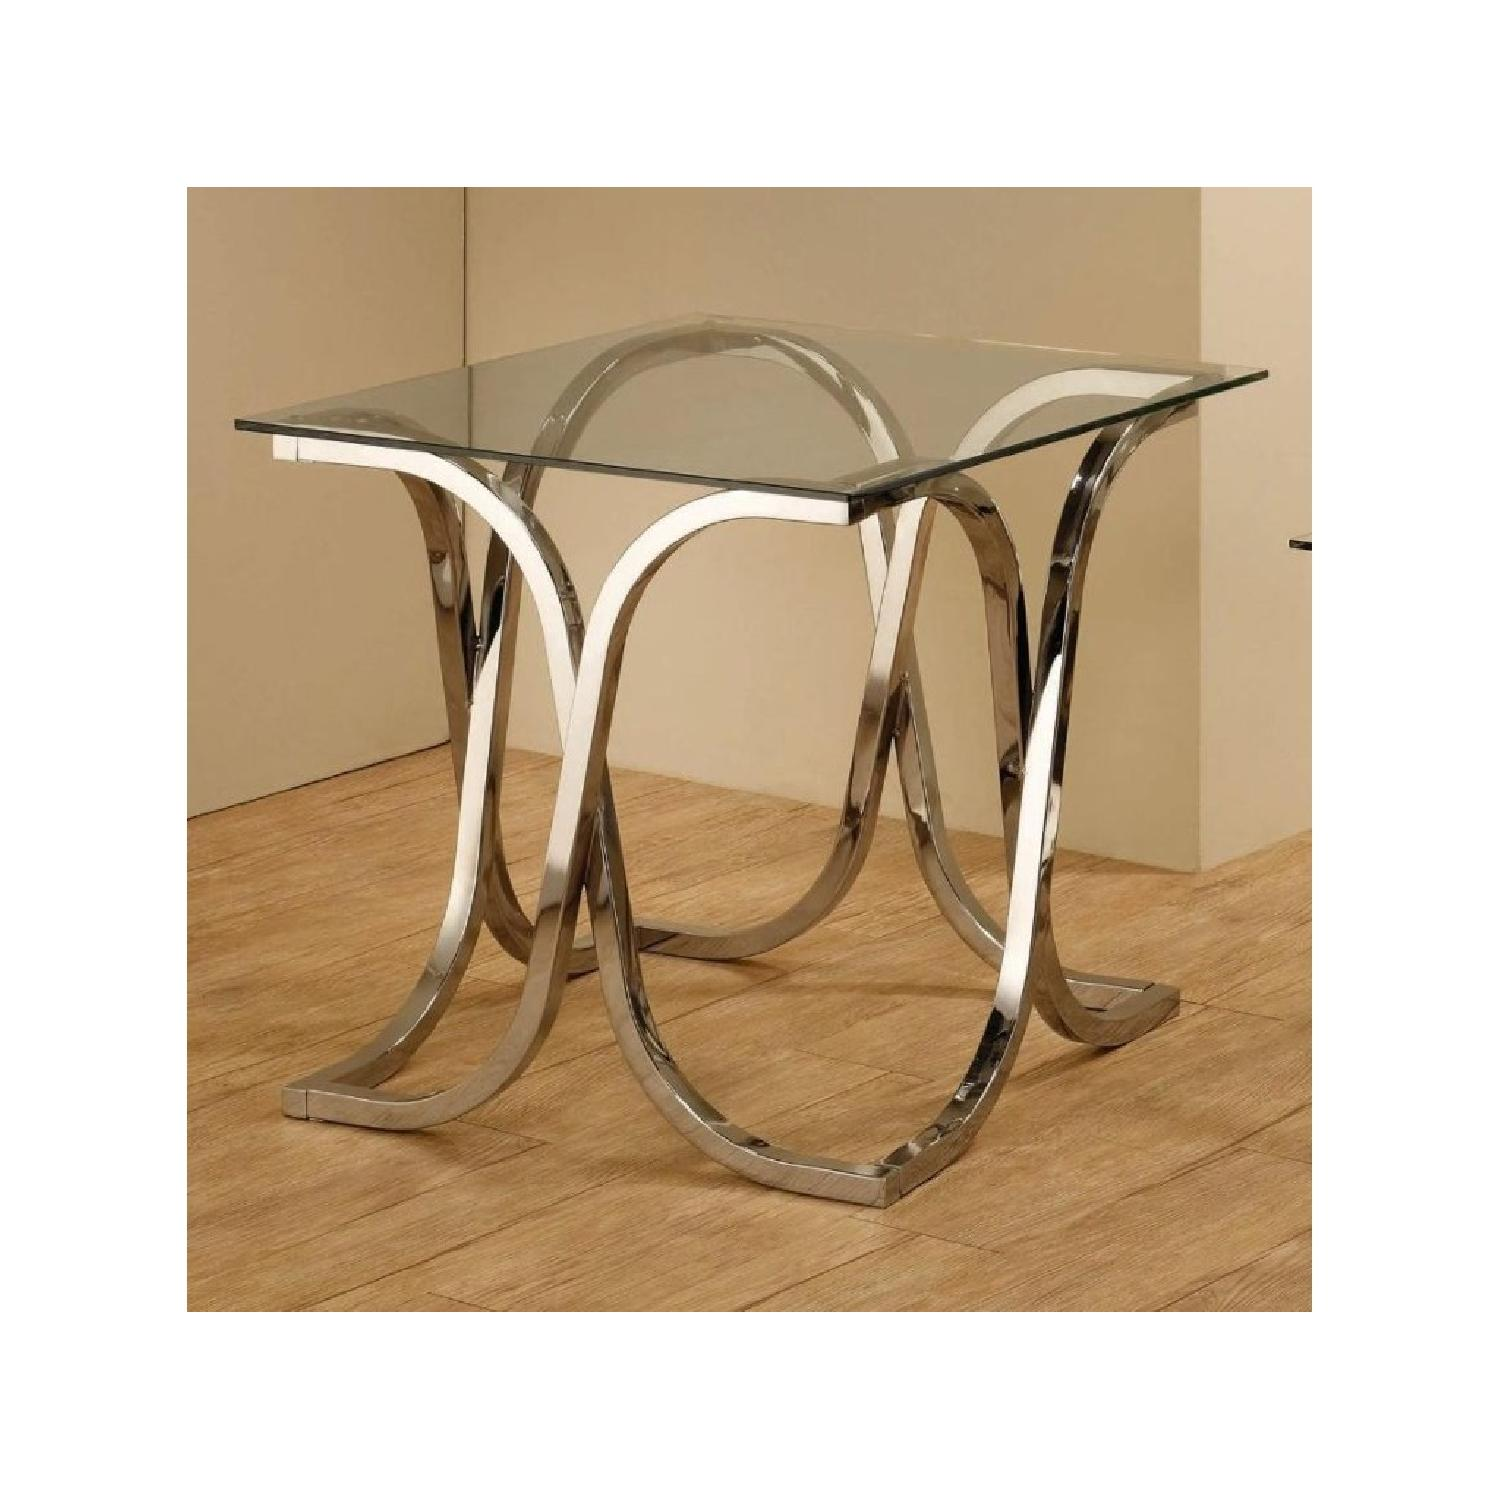 Contemporary Glass End Table in Nickel Finish - image-3